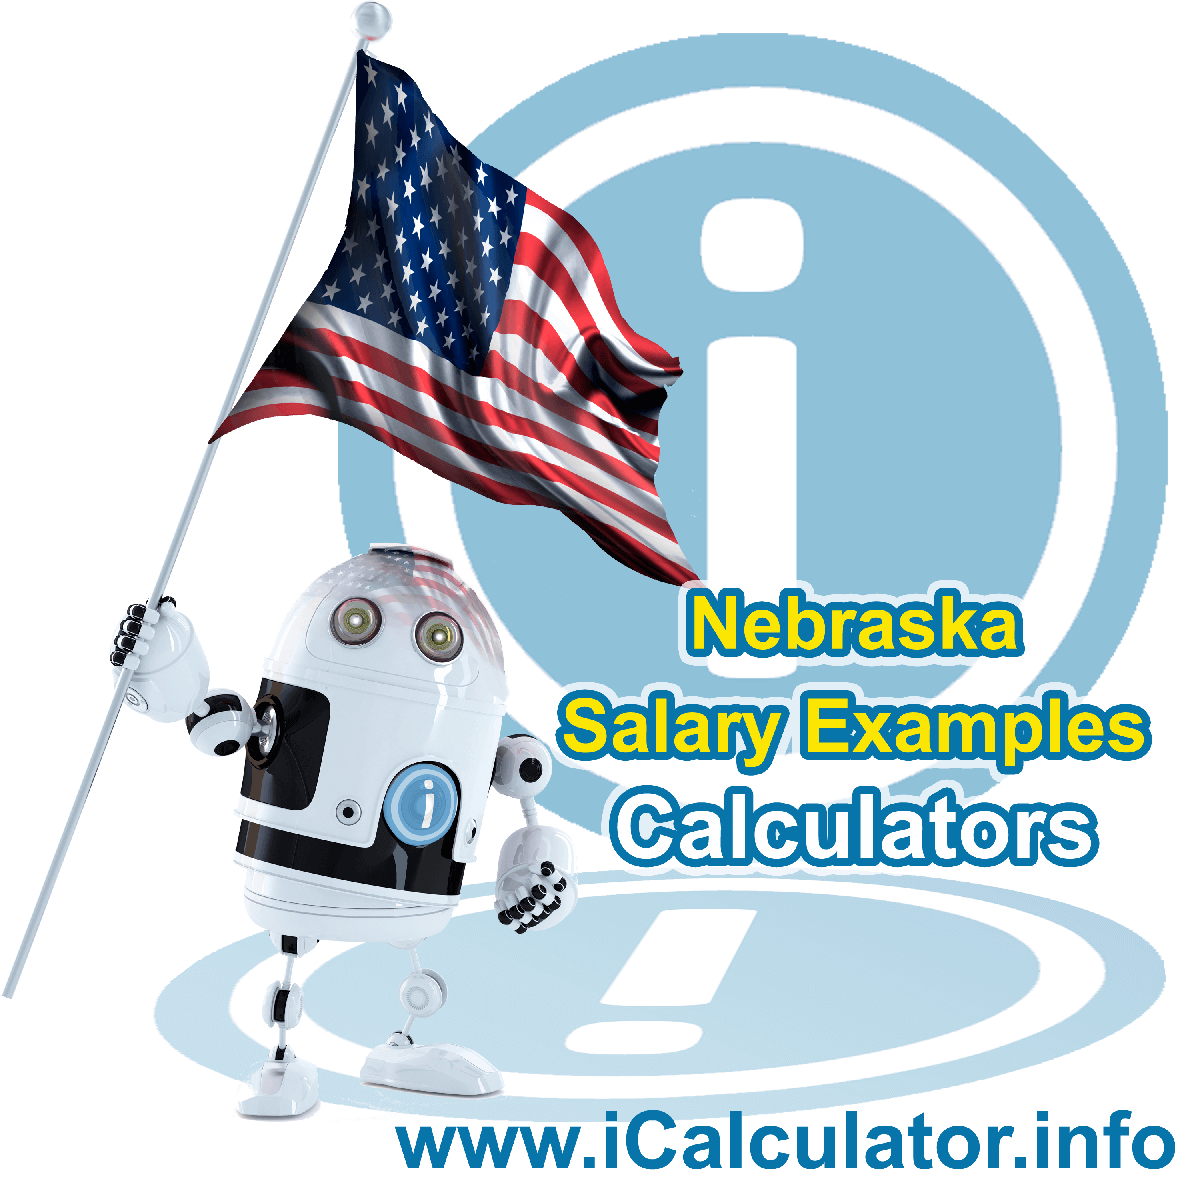 Nebraska Salary Example for $170.00 in 2020 | iCalculator | $170.00 salary example for employee and employer paying Nebraska State tincome taxes. Detailed salary after tax calculation including Nebraska State Tax, Federal State Tax, Medicare Deductions, Social Security, Capital Gains and other income tax and salary deductions complete with supporting Nebraska state tax tables